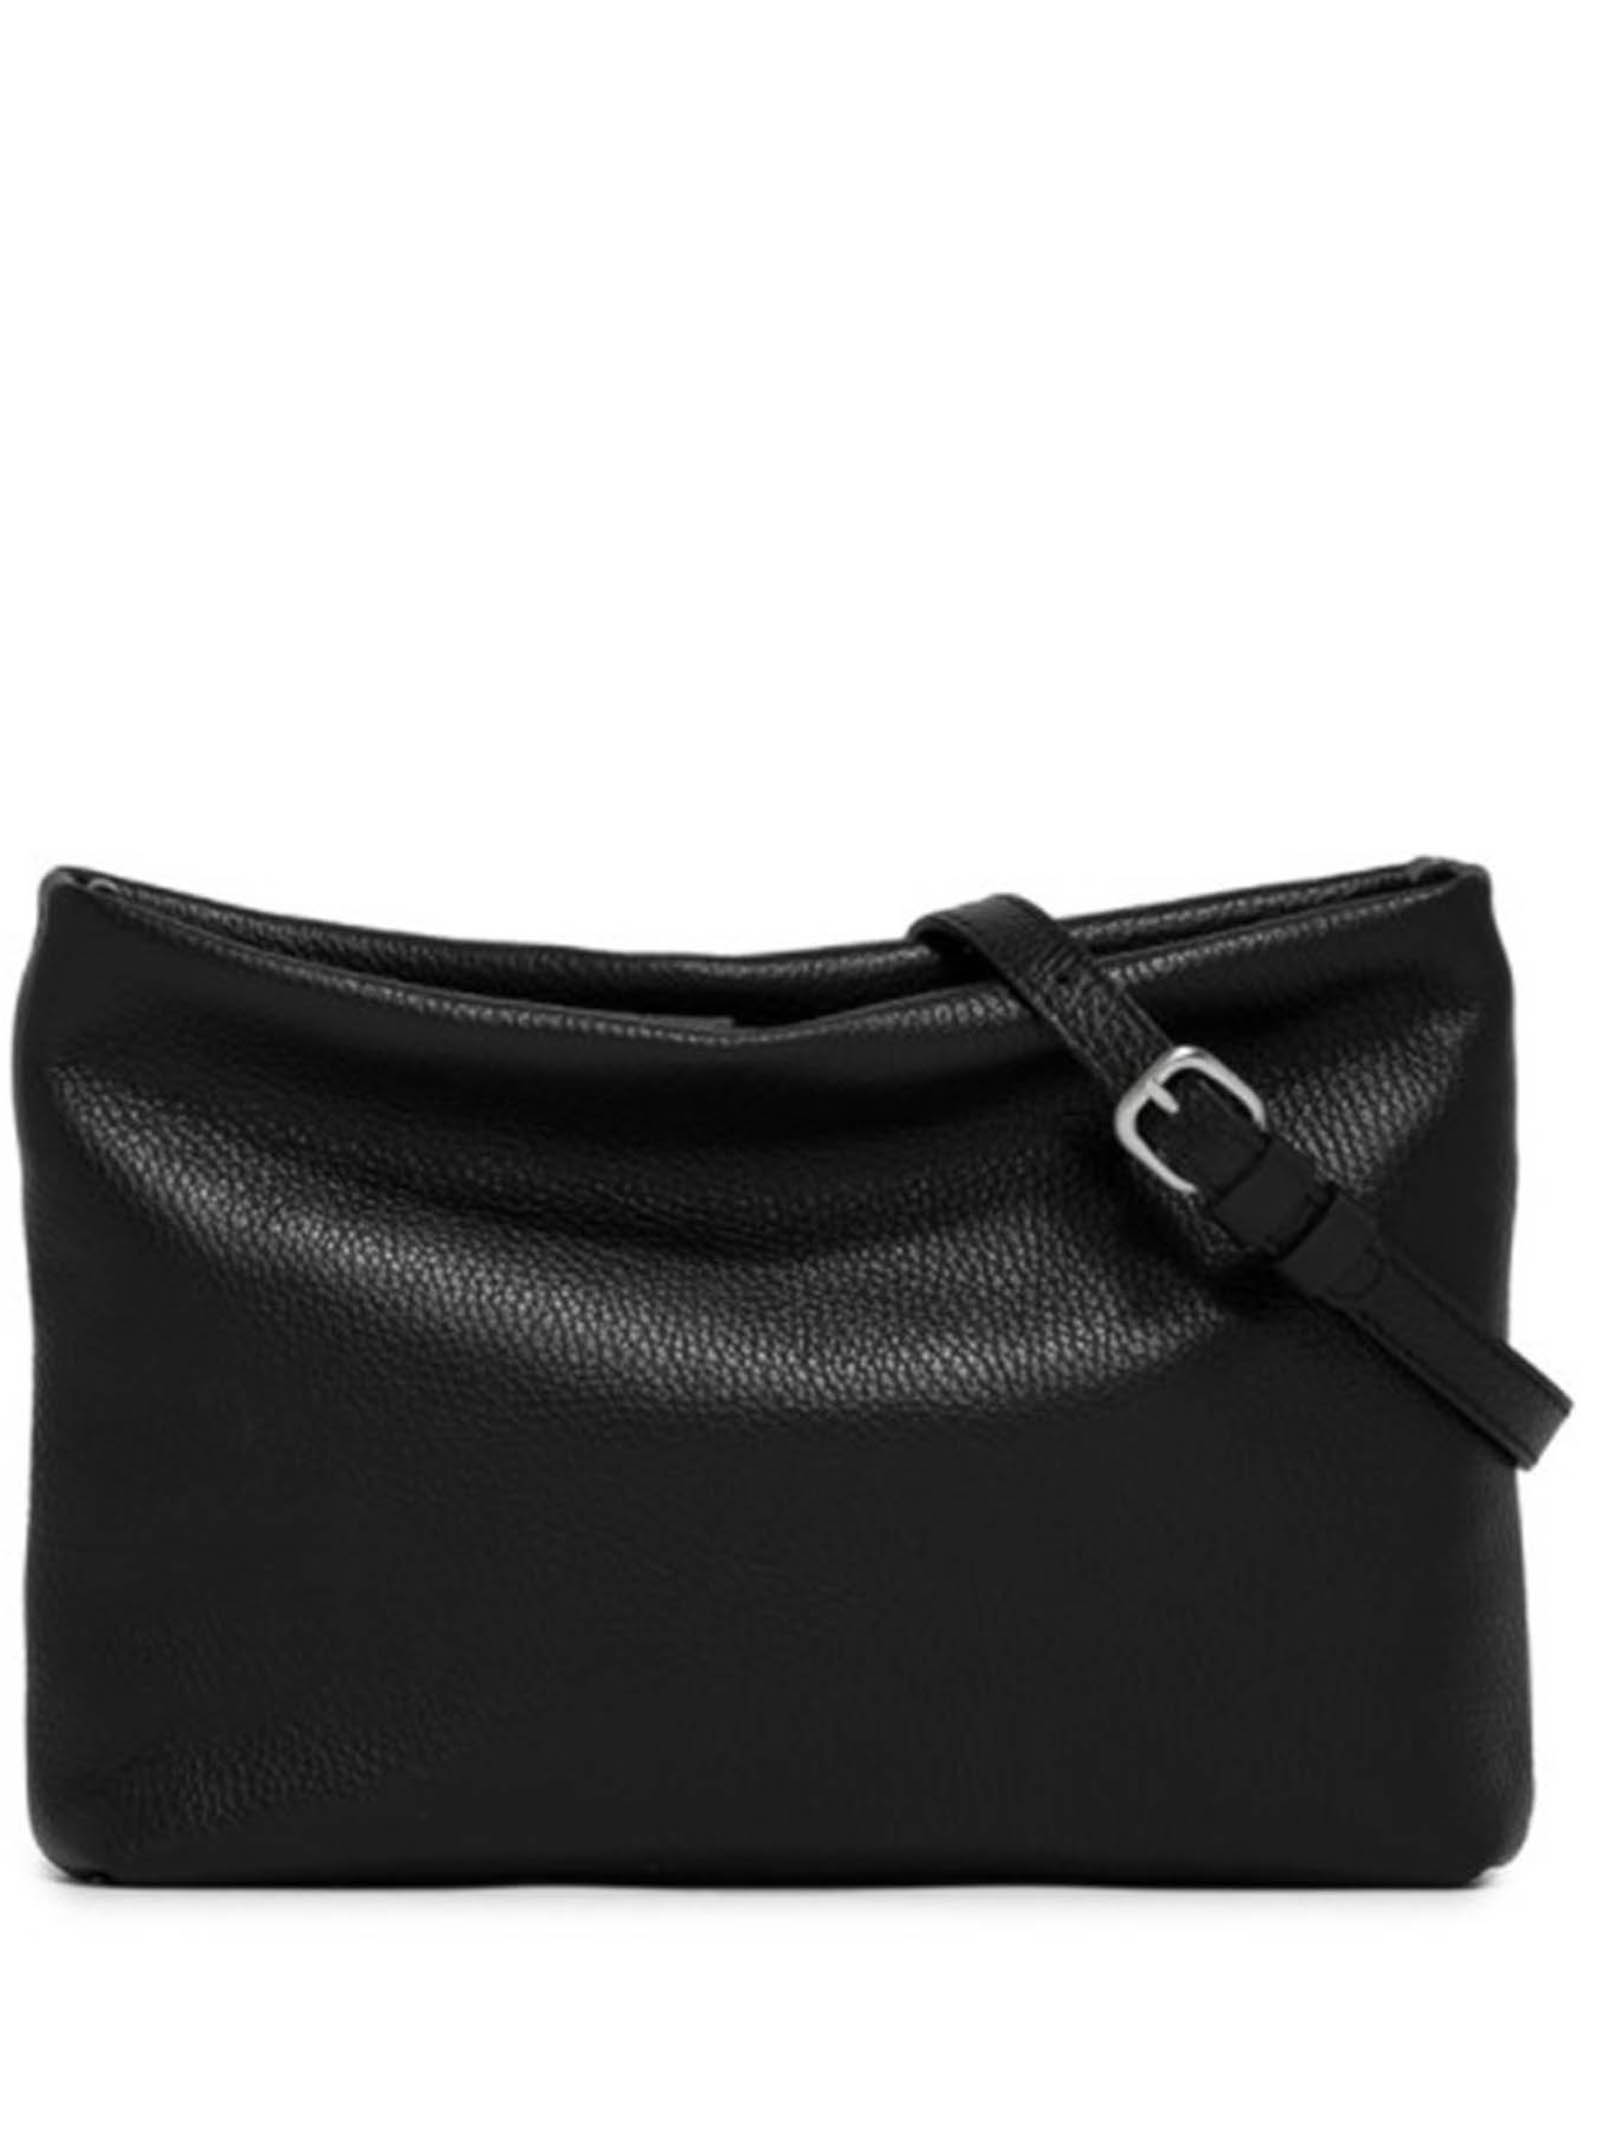 Woman's Shoulder Bag Maxi Brenda In Black Leather With Color Matched Chain And Adjustable And Detachable Leather Cross-body Strap Gianni Chiarini | Bags and backpacks | BS8266001